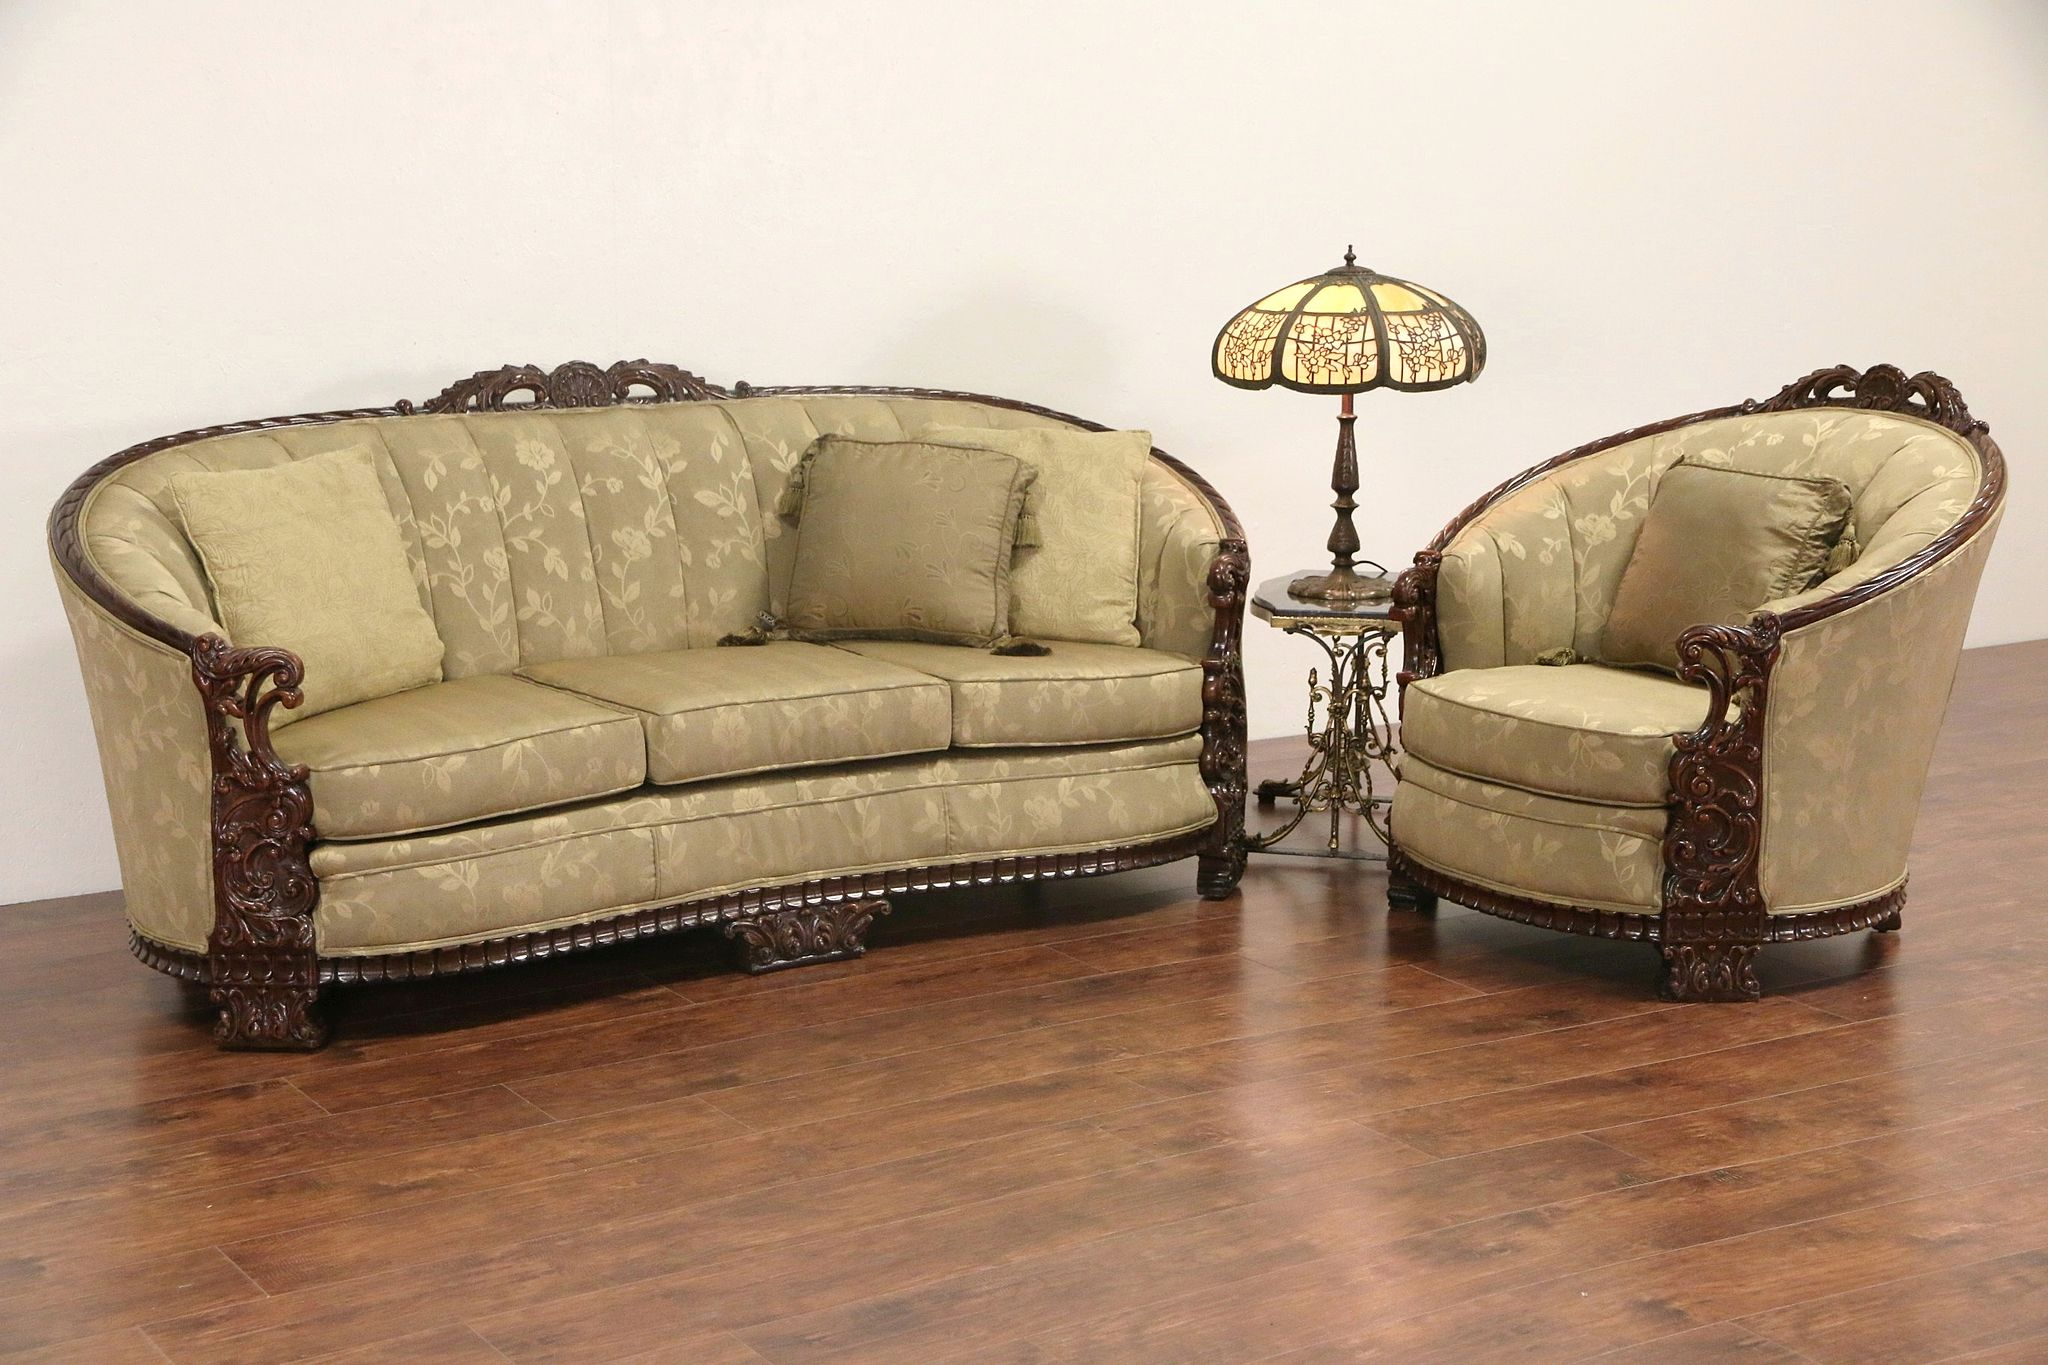 Prime Carved Sofa Club Chair Set 1930S Vintage Recent Upholstery Andrewgaddart Wooden Chair Designs For Living Room Andrewgaddartcom